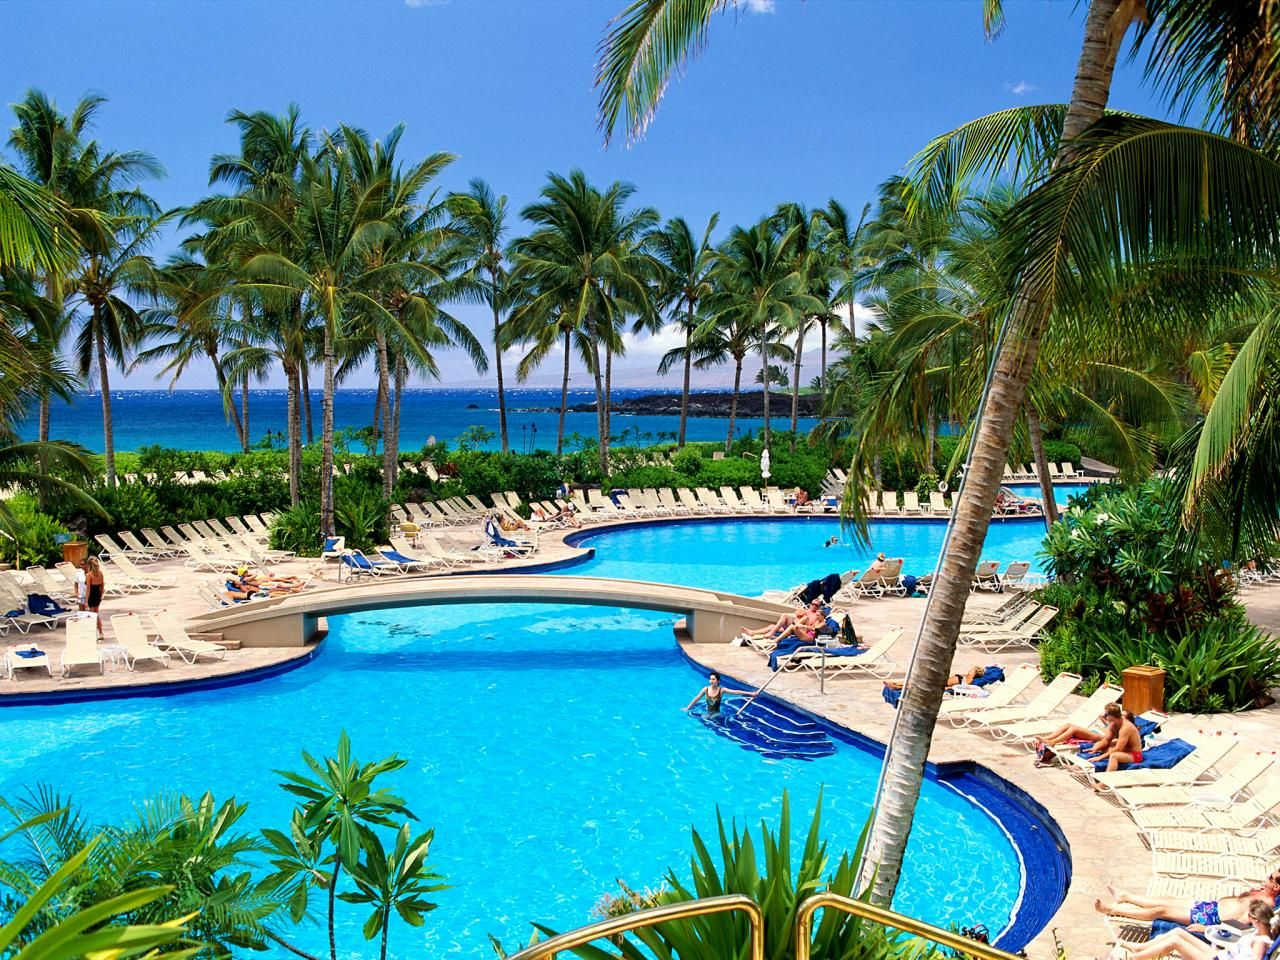 Top 8 family vacations in america travelchannel hawaii road trips publicscrutiny Image collections